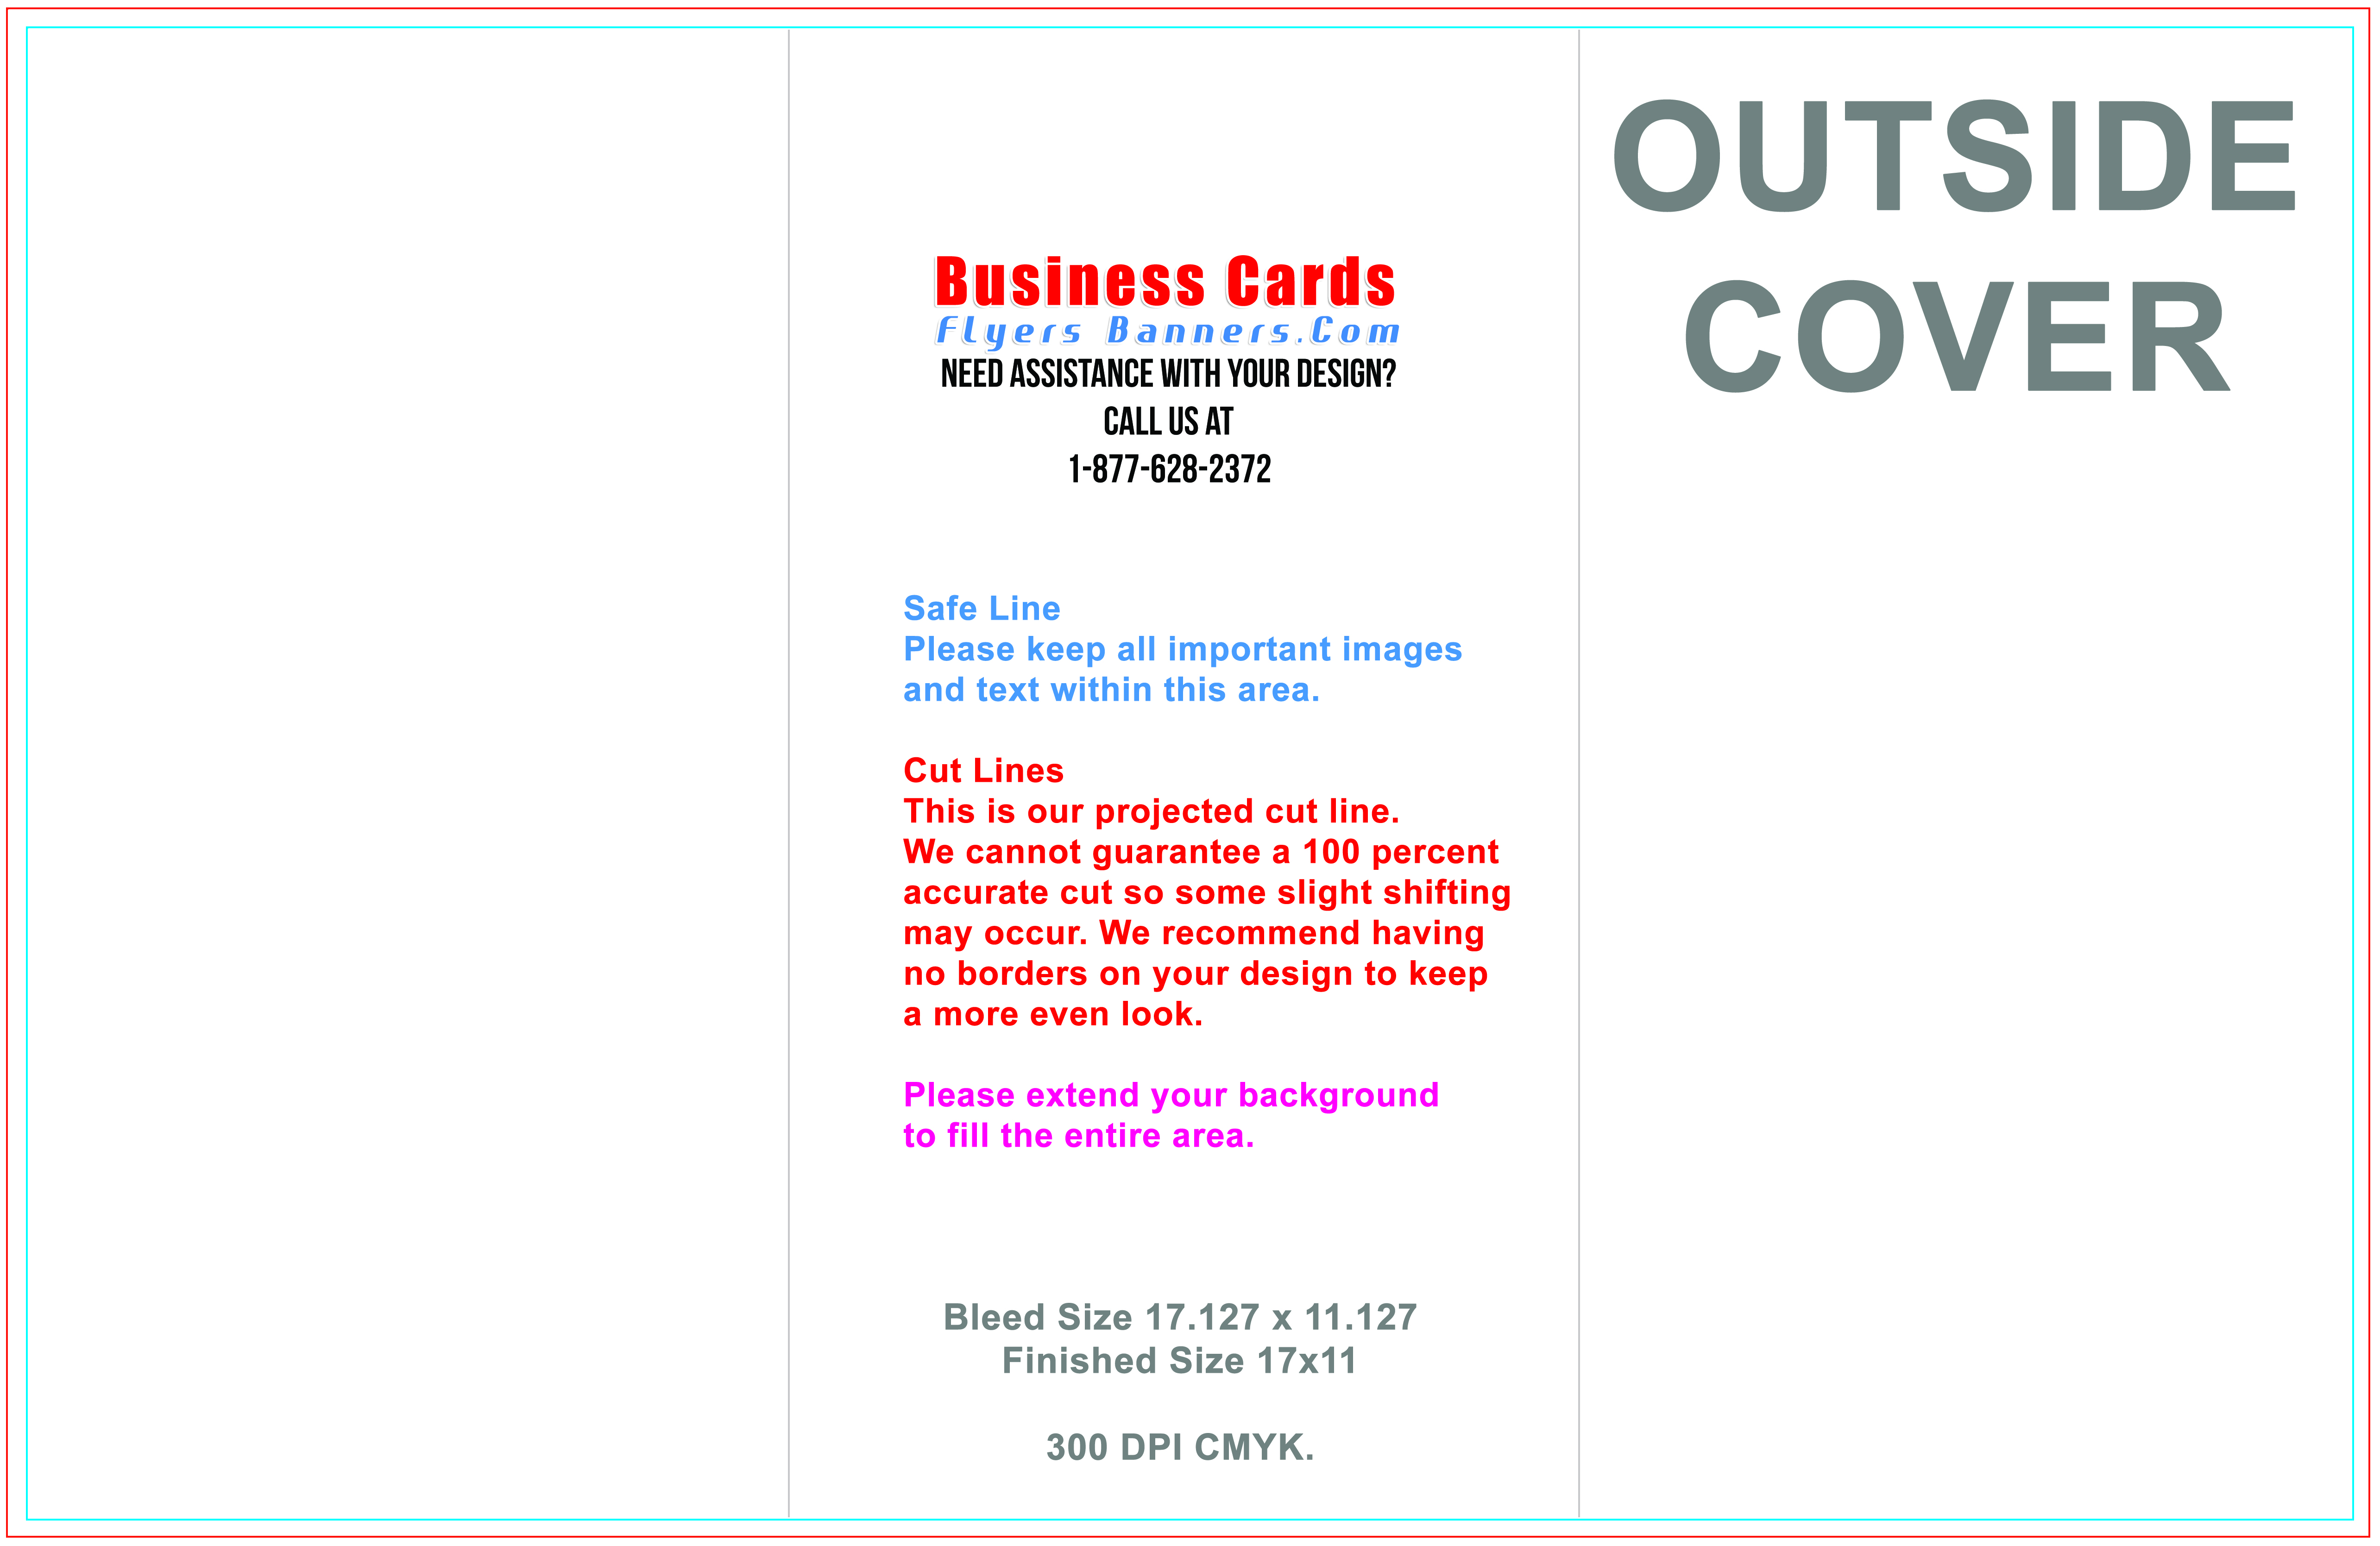 Brochure Templates - Business Cards Flyers and Banners